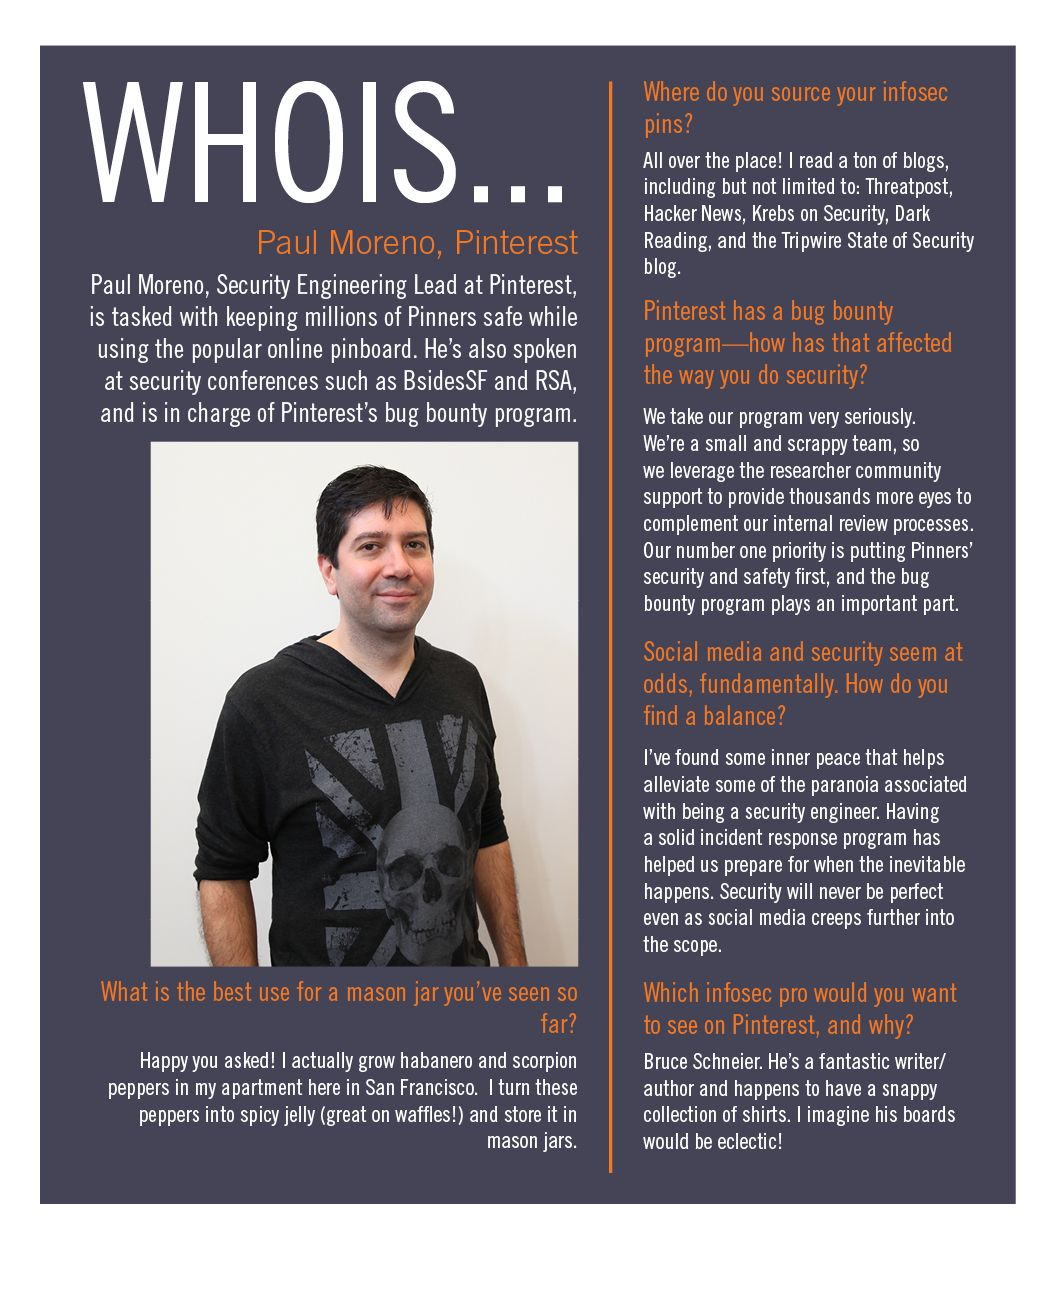 WHOIS: PAUL MORENO, SECURITY ENGINEERING LEAD AT PINTEREST  - See more at: https://blog.opendns.com/2015/07/29/whois-paul-moreno-security-engineering-lead-at-pinterest/#sthash.qYwEKuxv.dpuf